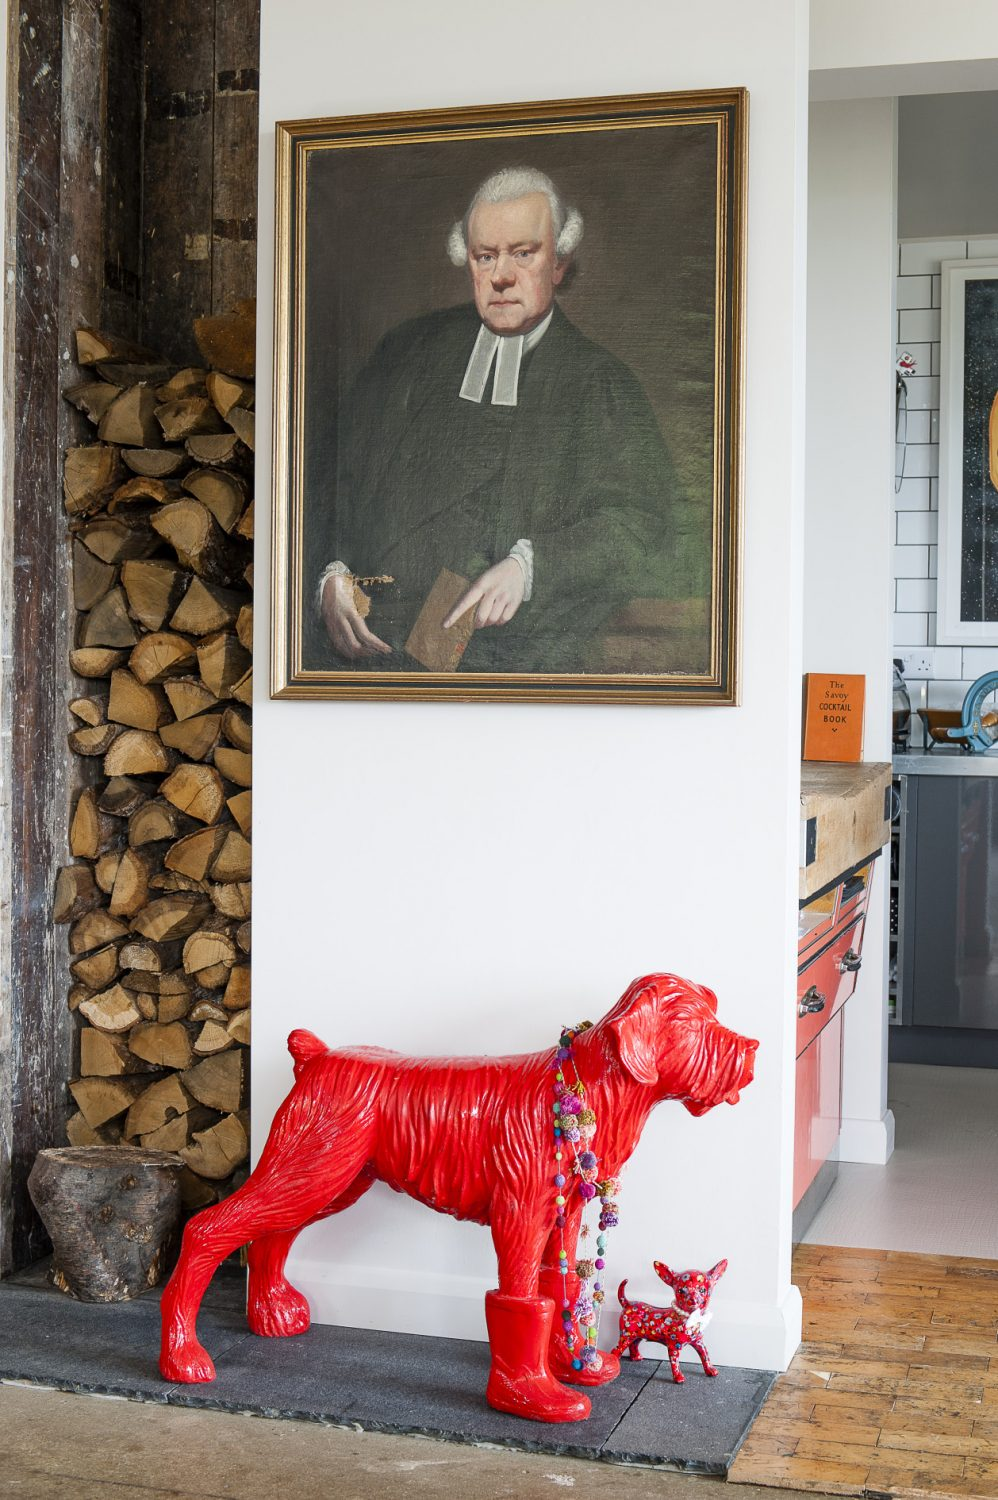 Above a life-sized red dog - in wellington boots - by Belgian sculptor William Sweetlove hangs an oil of a severe 18th century gentleman